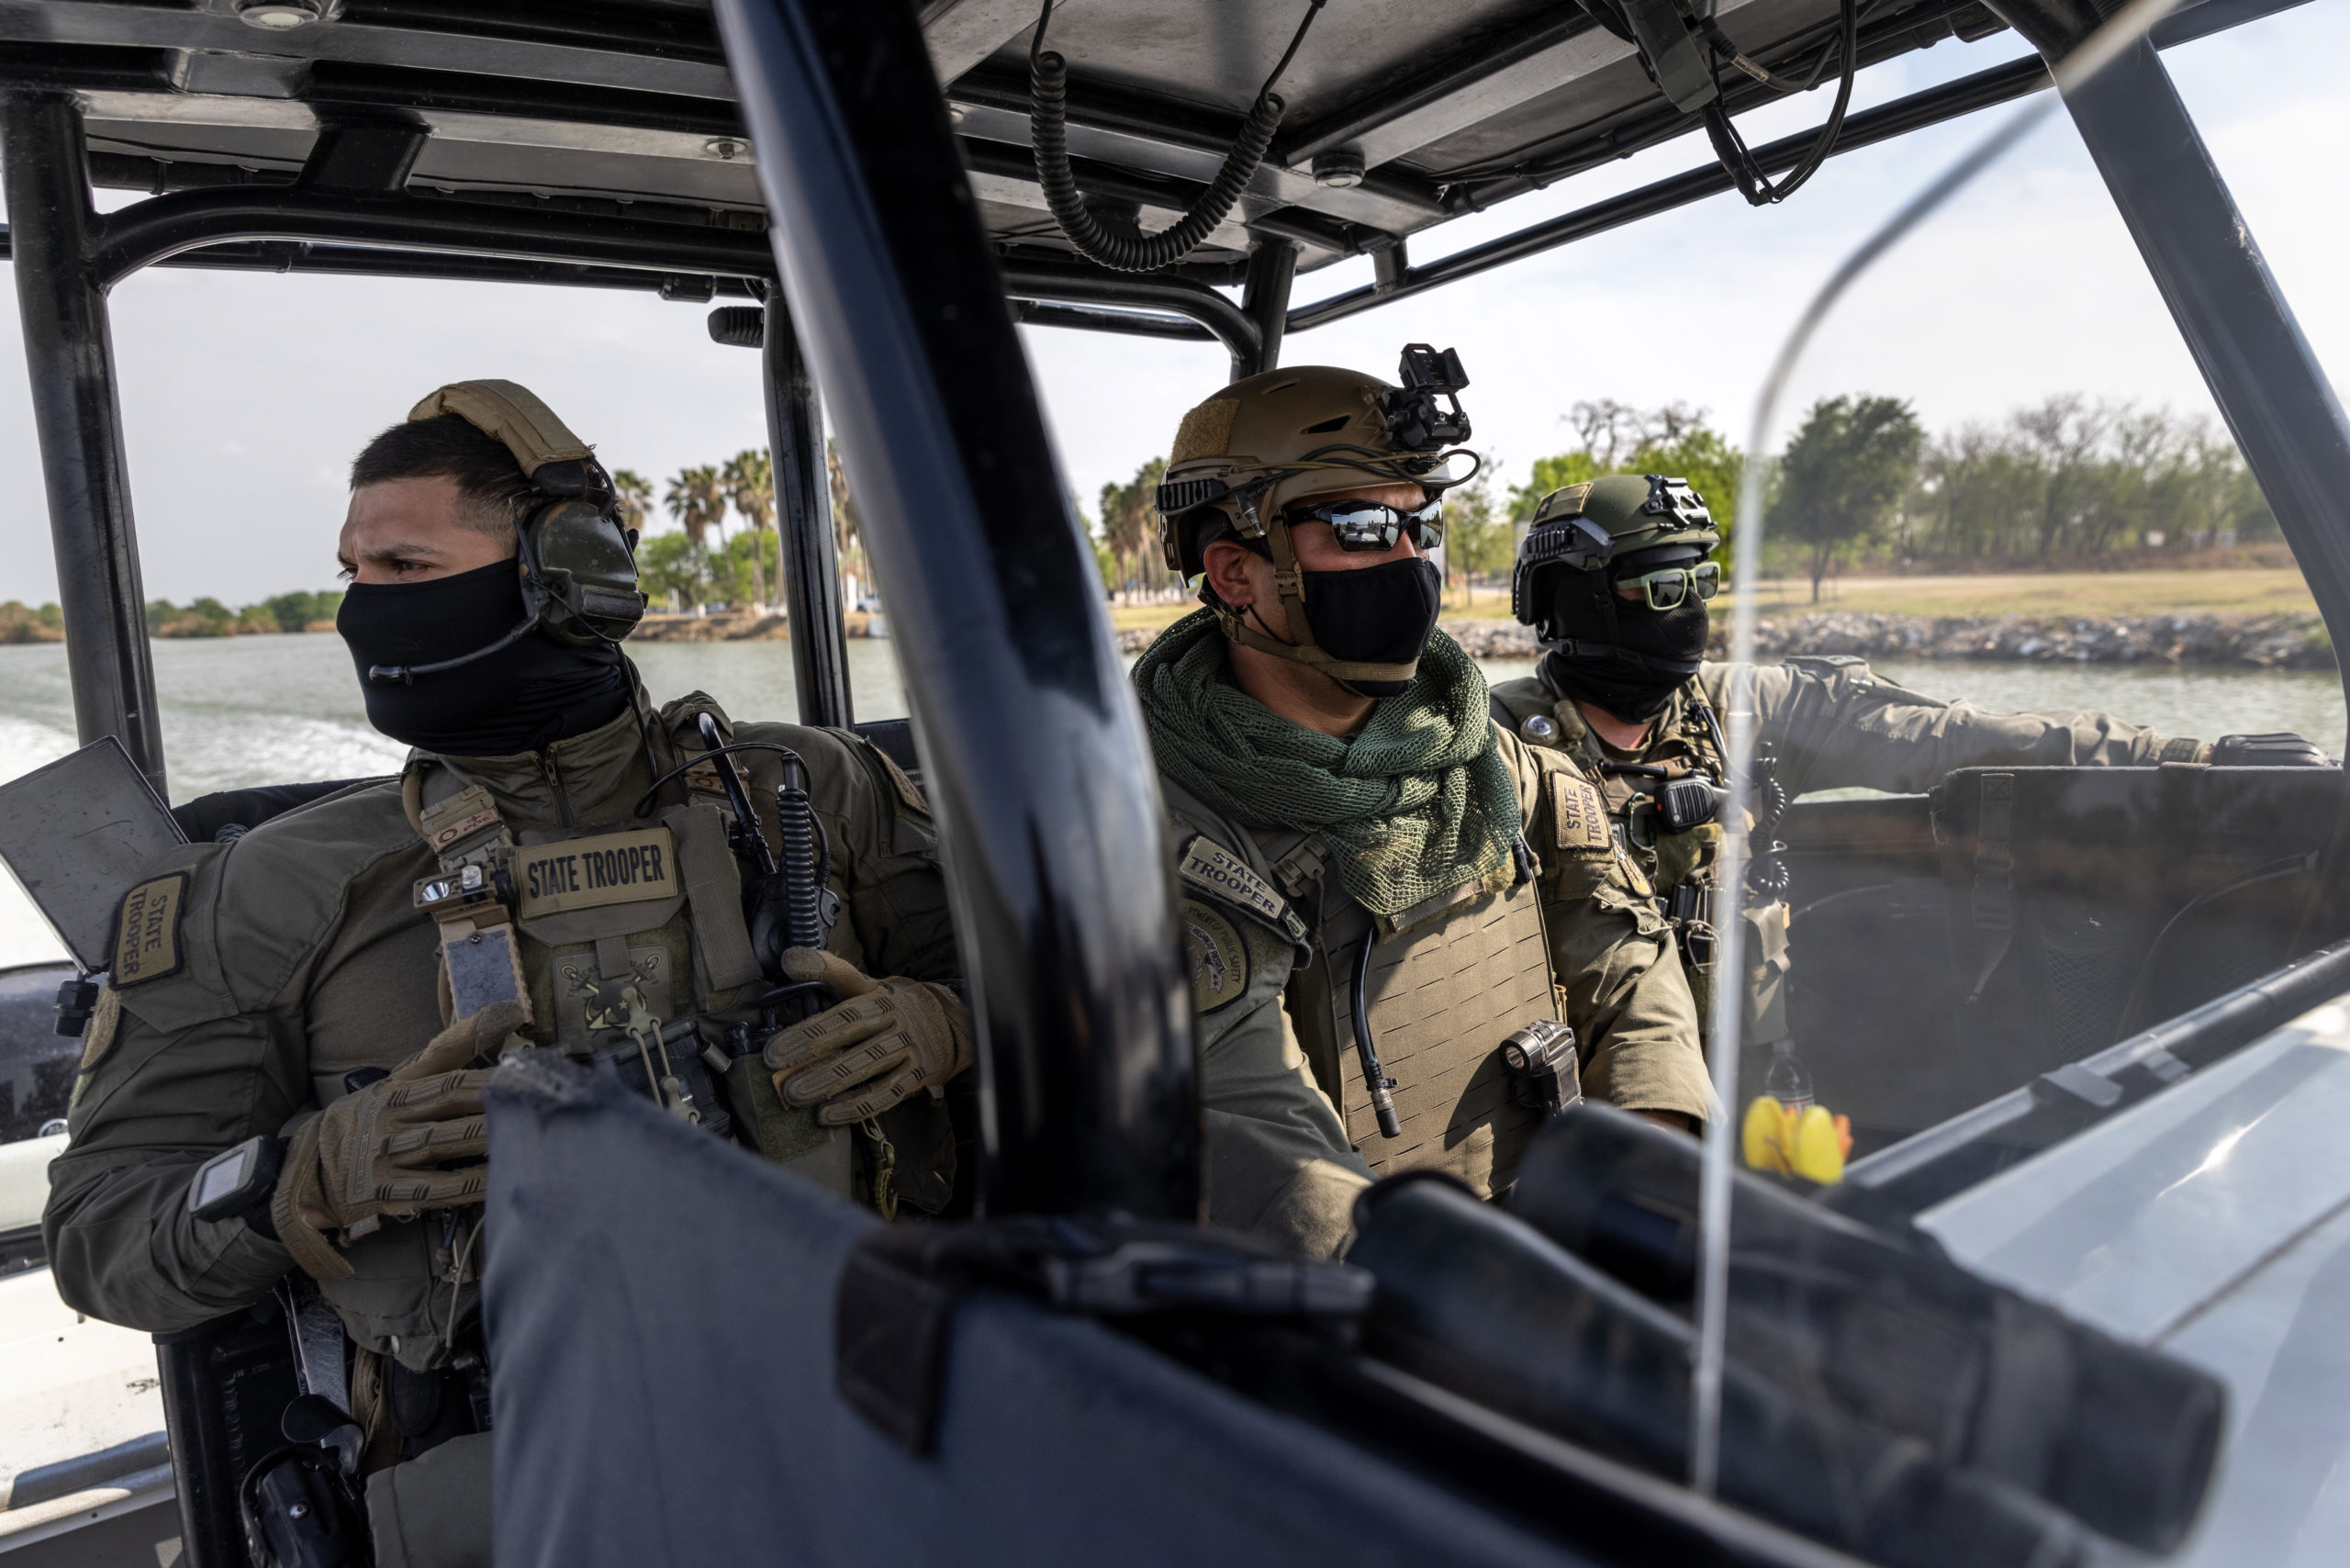 """MISSION, TEXAS - MARCH 23: Members of the Texas Department of Public Safety's Tactical Marine Unit patrol the Rio Grande along the U.S.-Mexico Border on March 23, 2021 near Mission, Texas. Texas DPS troopers are taking part in Operation Lone Star in supporting U.S. Border Patrol agents to """"deny Mexican Cartels and other smugglers the ability to move drugs and people into Texas."""" A surge of immigrants, including unaccompanied minors crossing into the United States from Mexico is overcrowding processing and detention centers in south Texas. (Photo by John Moore/Getty Images)"""